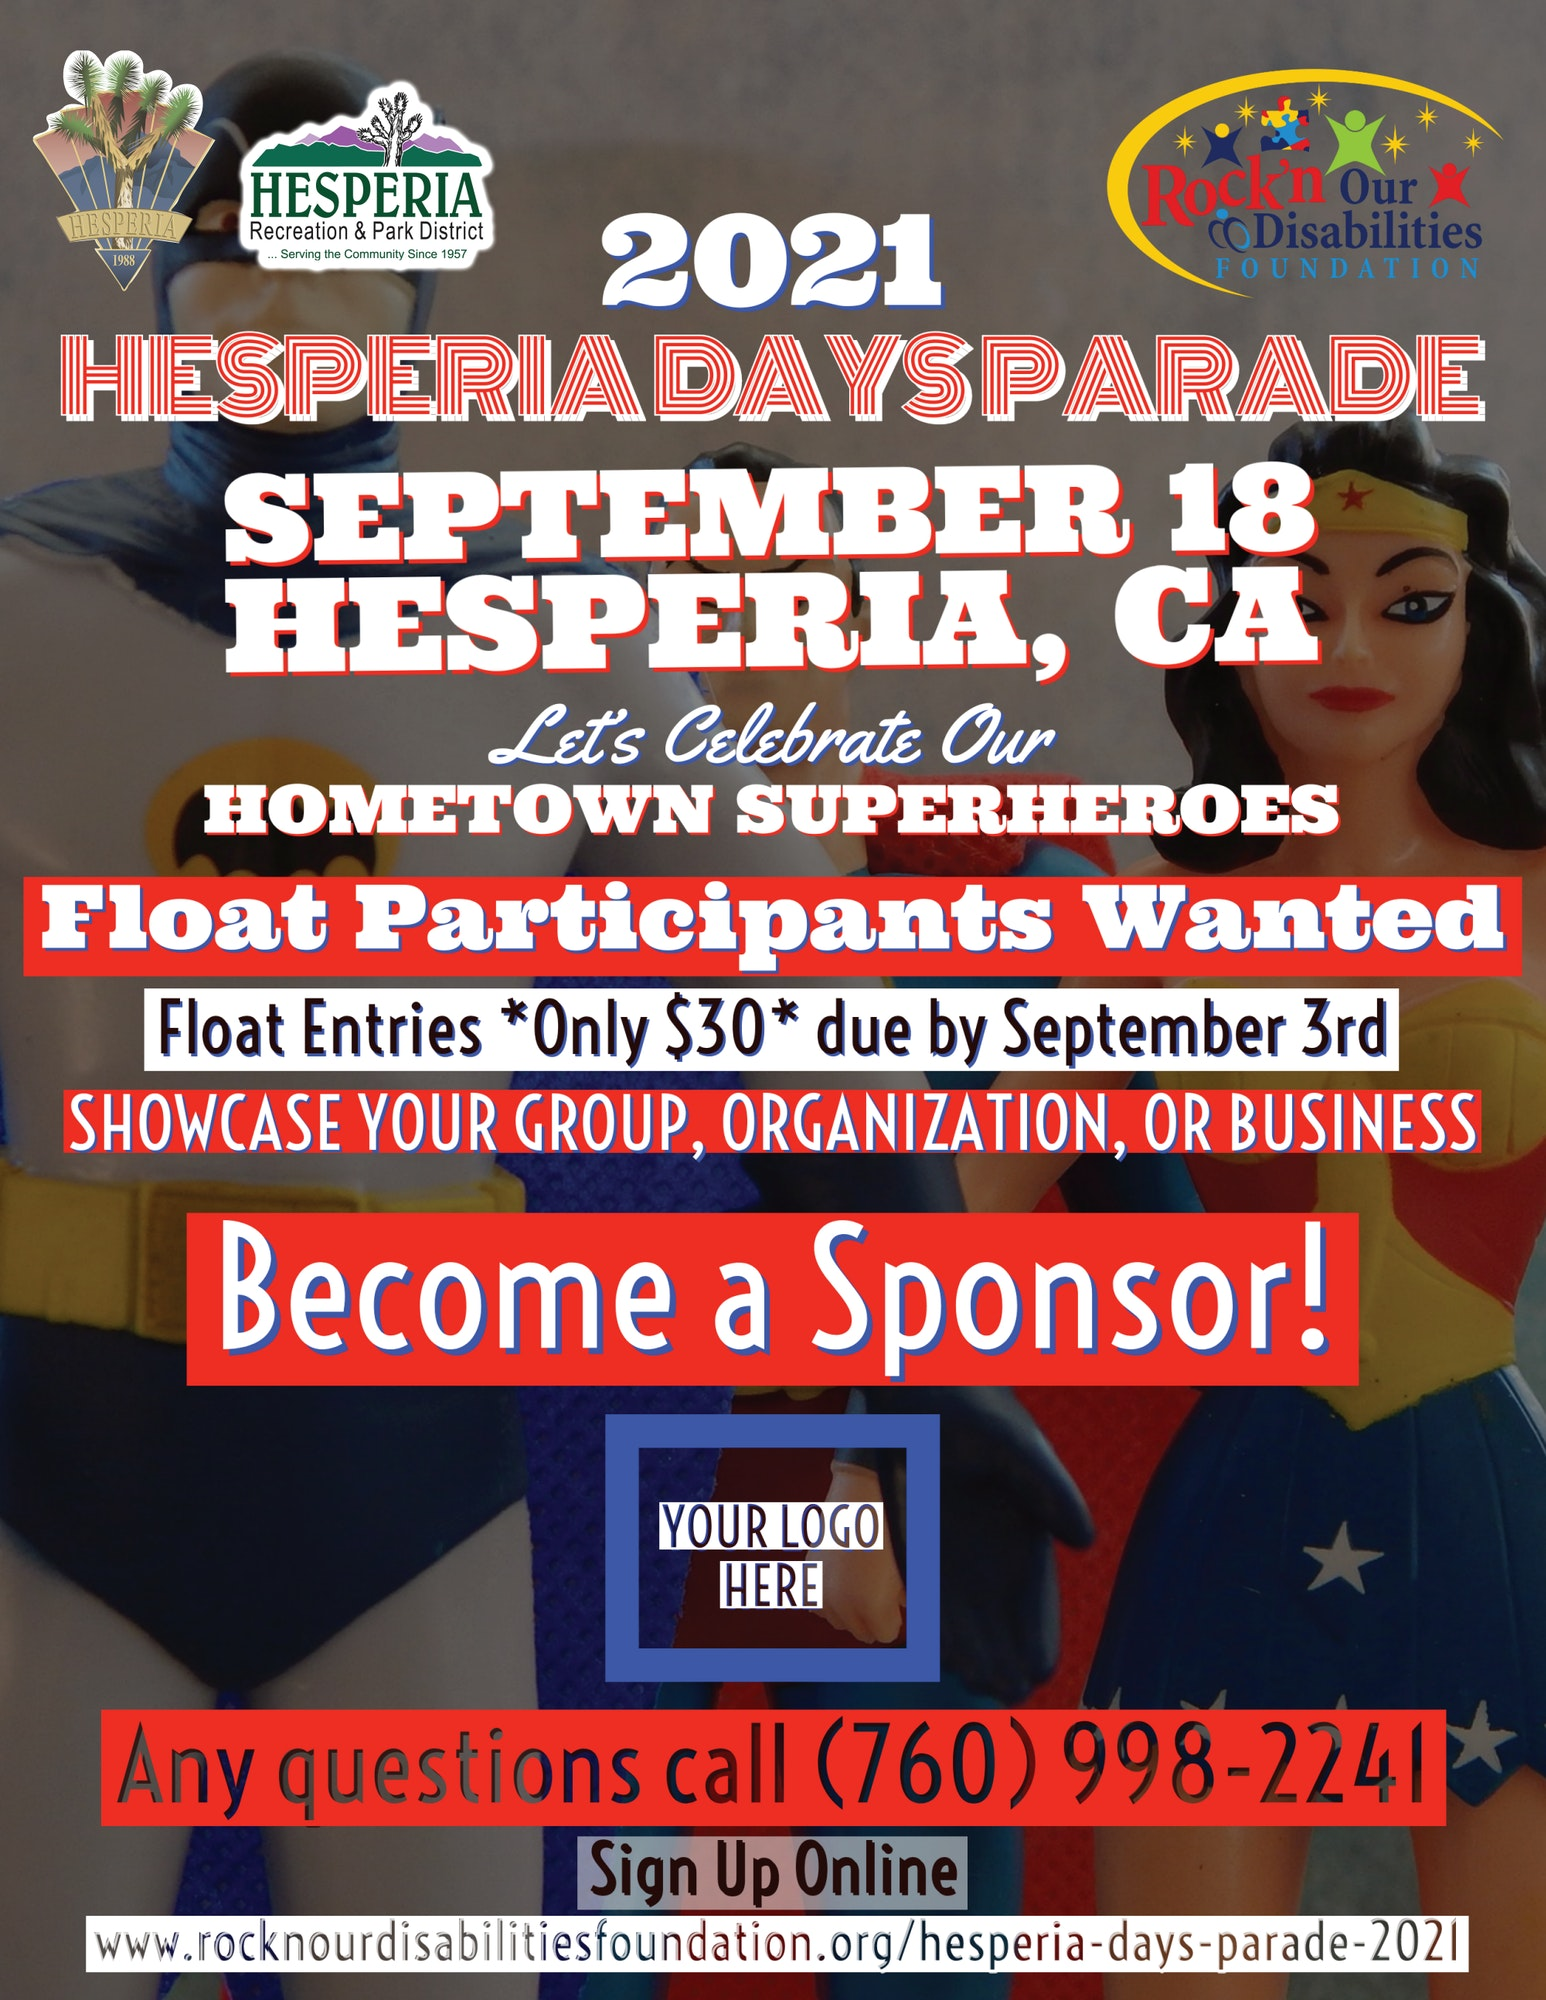 Hesperia Days Parade (Directly after the 5K) Saturday, September 18th at 9:00 a.m. on Main Street, from 'I' Avenue to 'E' Avenue. For all parade related inquiries and to register your float, please visit rocknourdisabilitiesfoundation.org/hesperia-days-parade-2021.